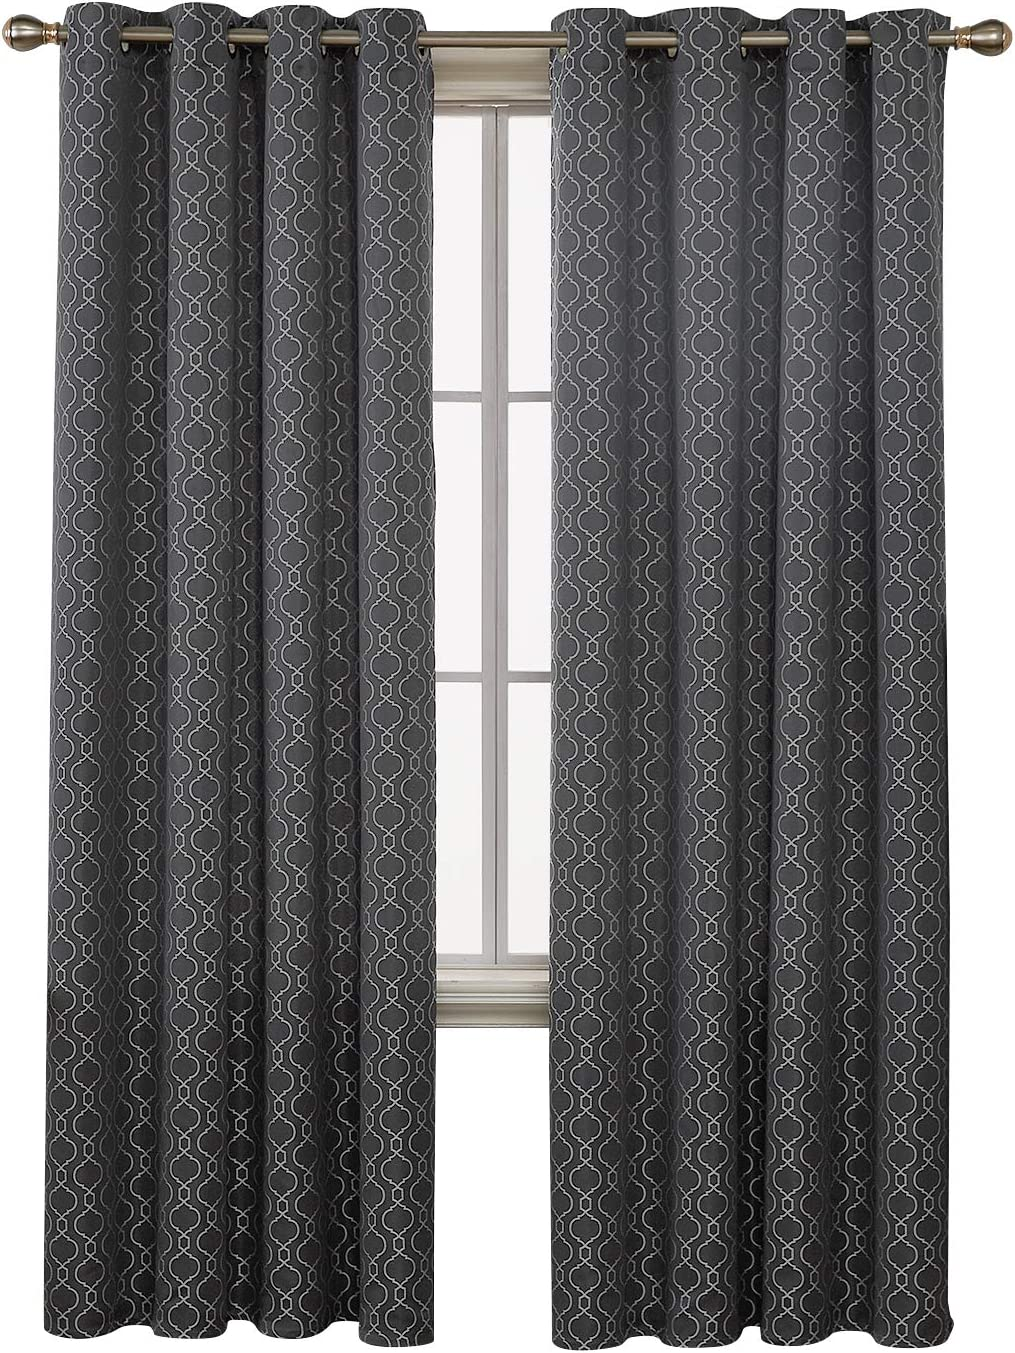 Deconovo Decorative Room Darkening Curtains Textured Moroccan Jacquard Curtains for Bedroom 52x95 Dark Grey Set of 2